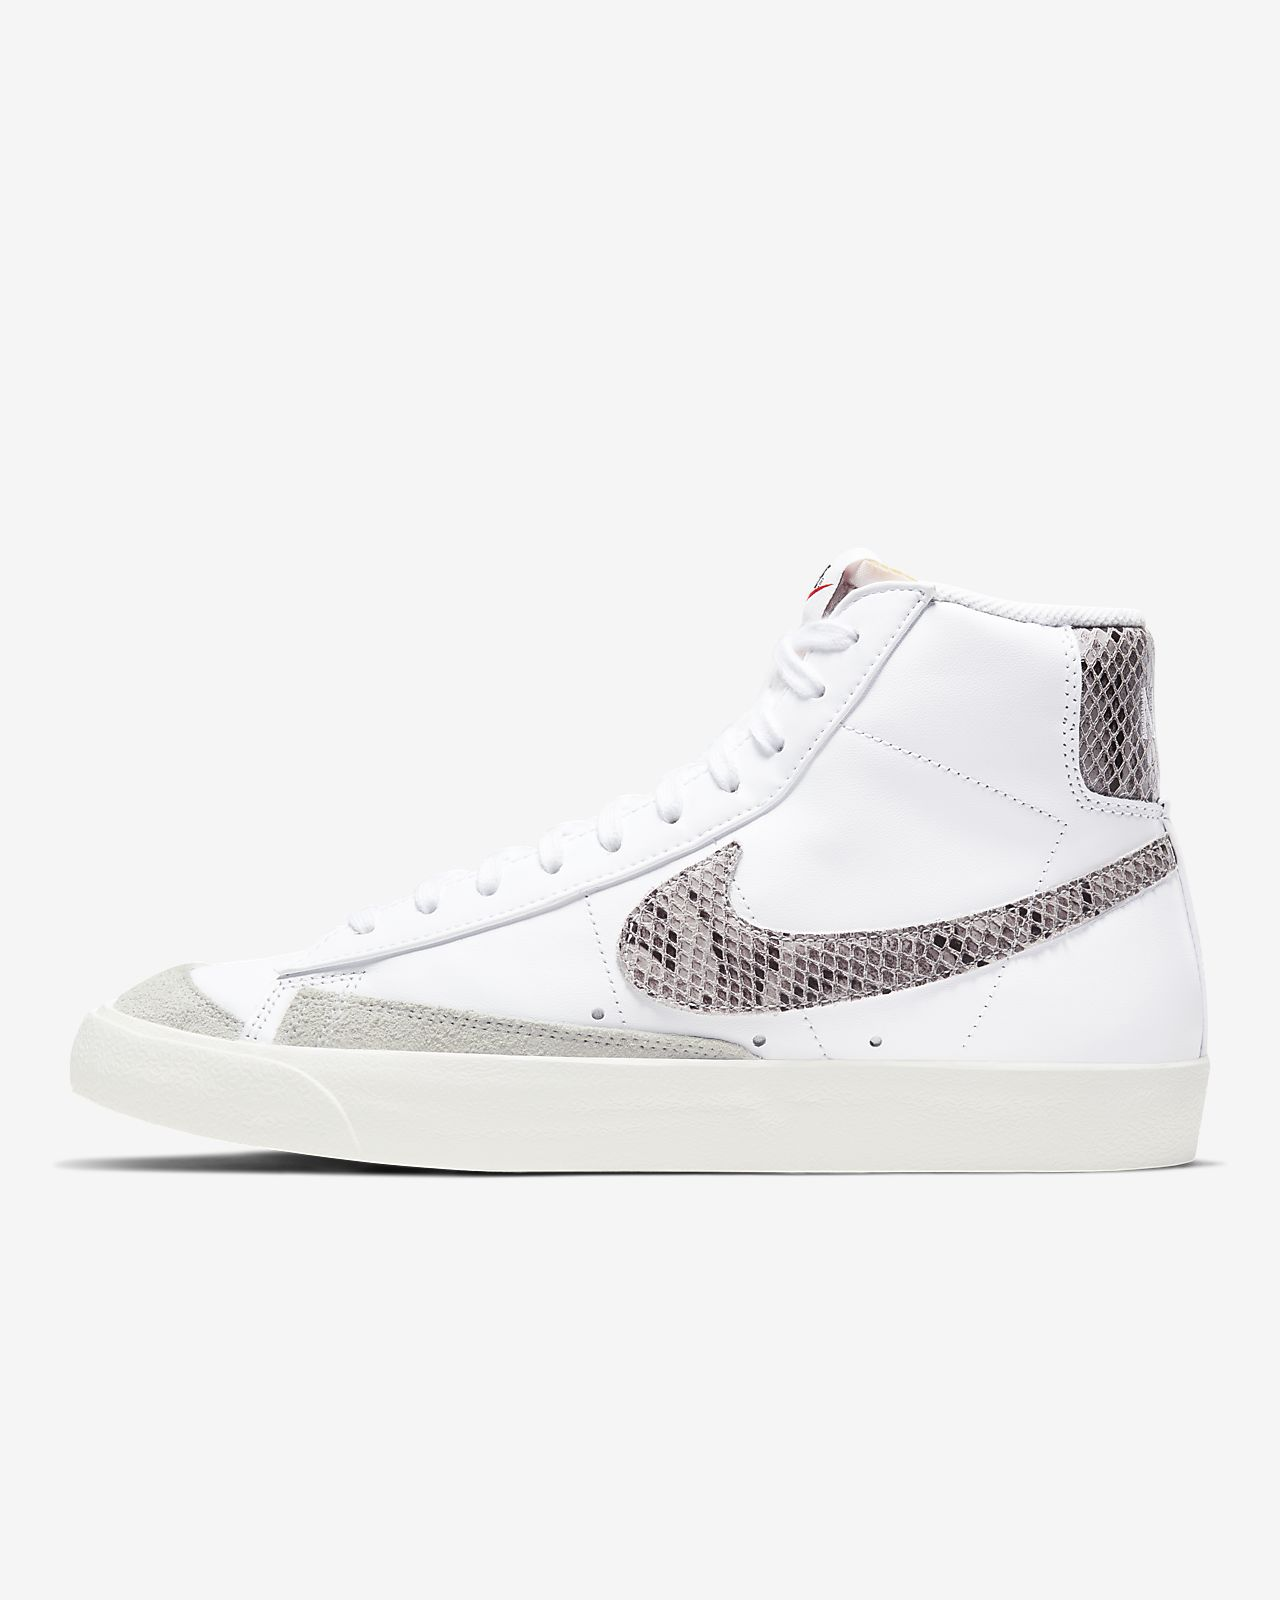 wholesale outlet cheaper special section Nike Blazer Mid 77 Vintage Shoe